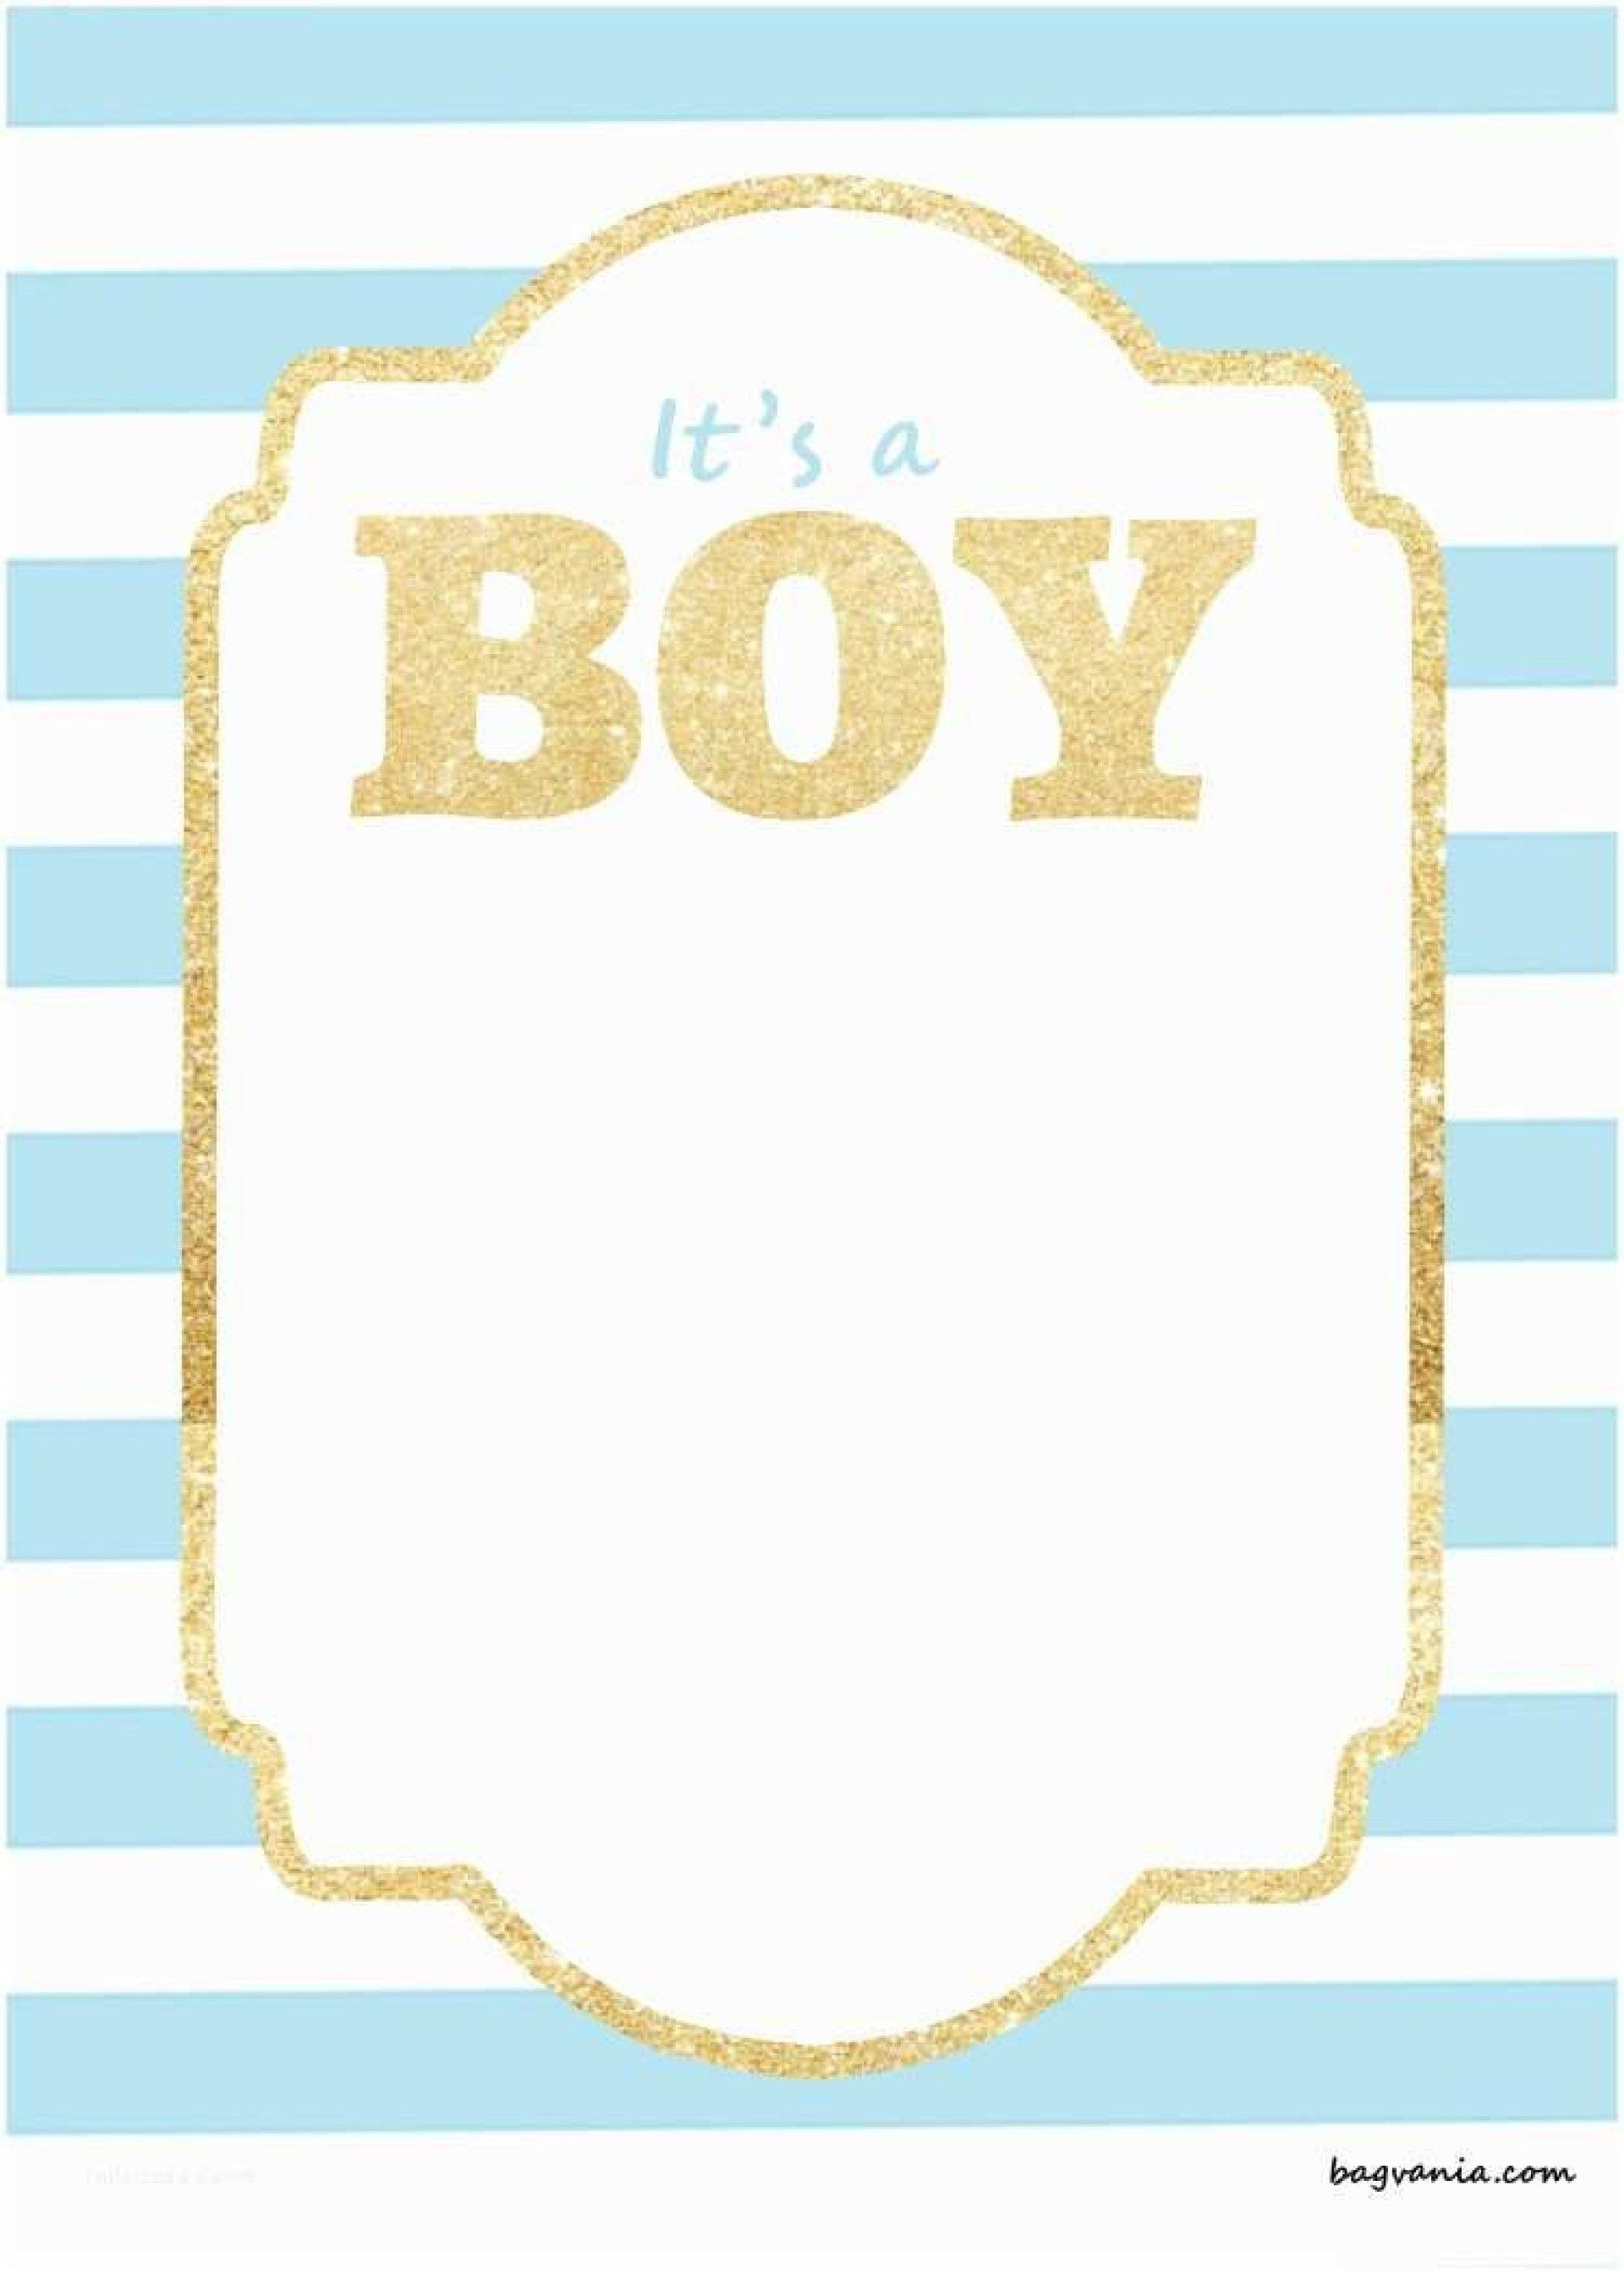 009 Stunning Free Baby Shower Invitation Template For Boy Idea 1920